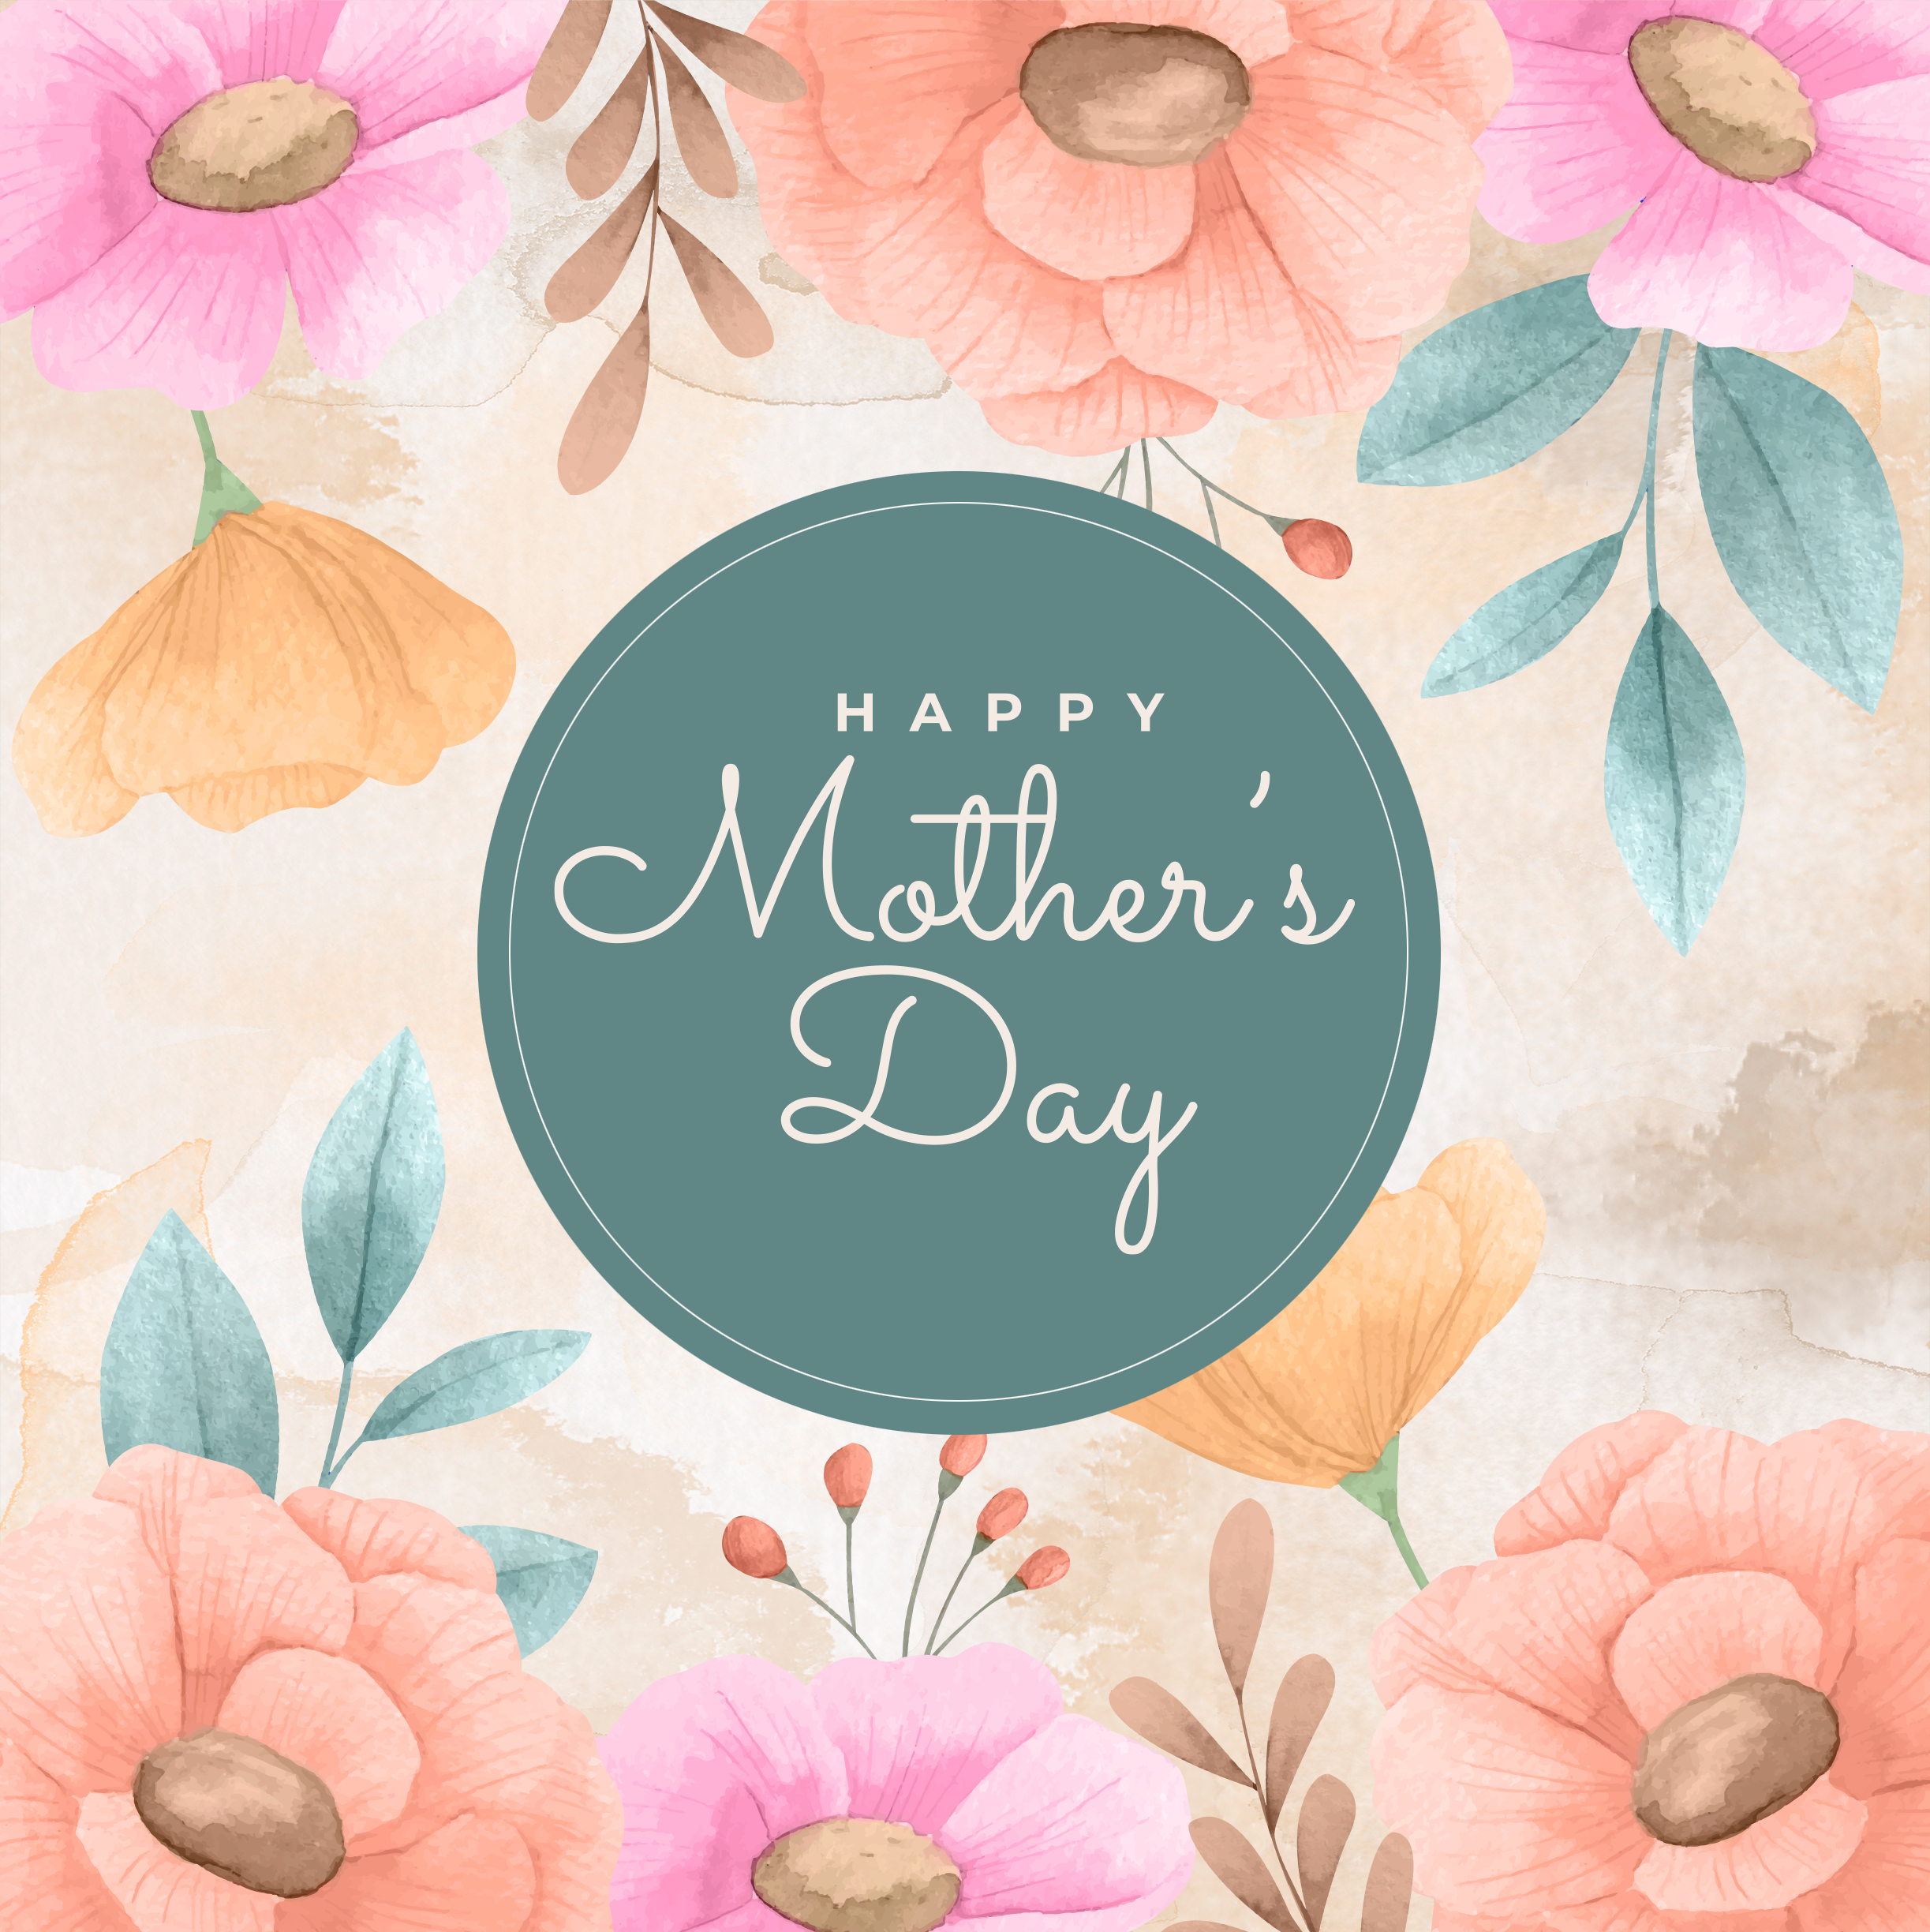 Happy Mothers day with beautiful painted flower background 2446 x 2448